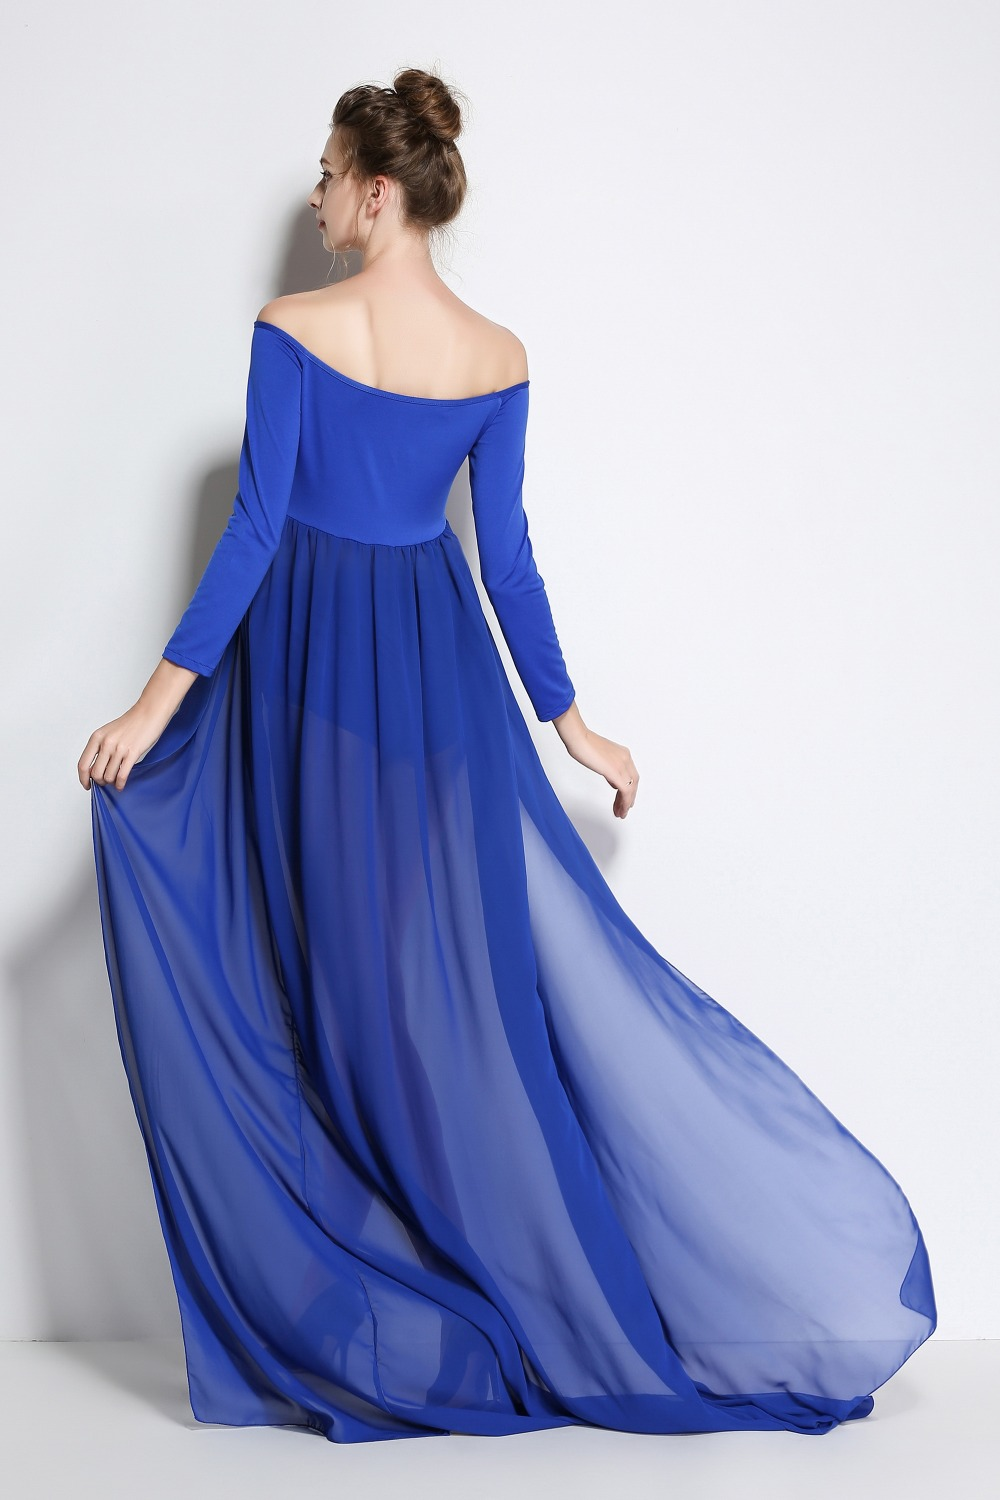 blue plus size Pregnant Photography Props Pregnancy Maternity Dress  Maternity Photo Shoot Long Dress baby shower Fancy Dresses-in Dresses from  Mother   Kids ... e635f9ebf8bb